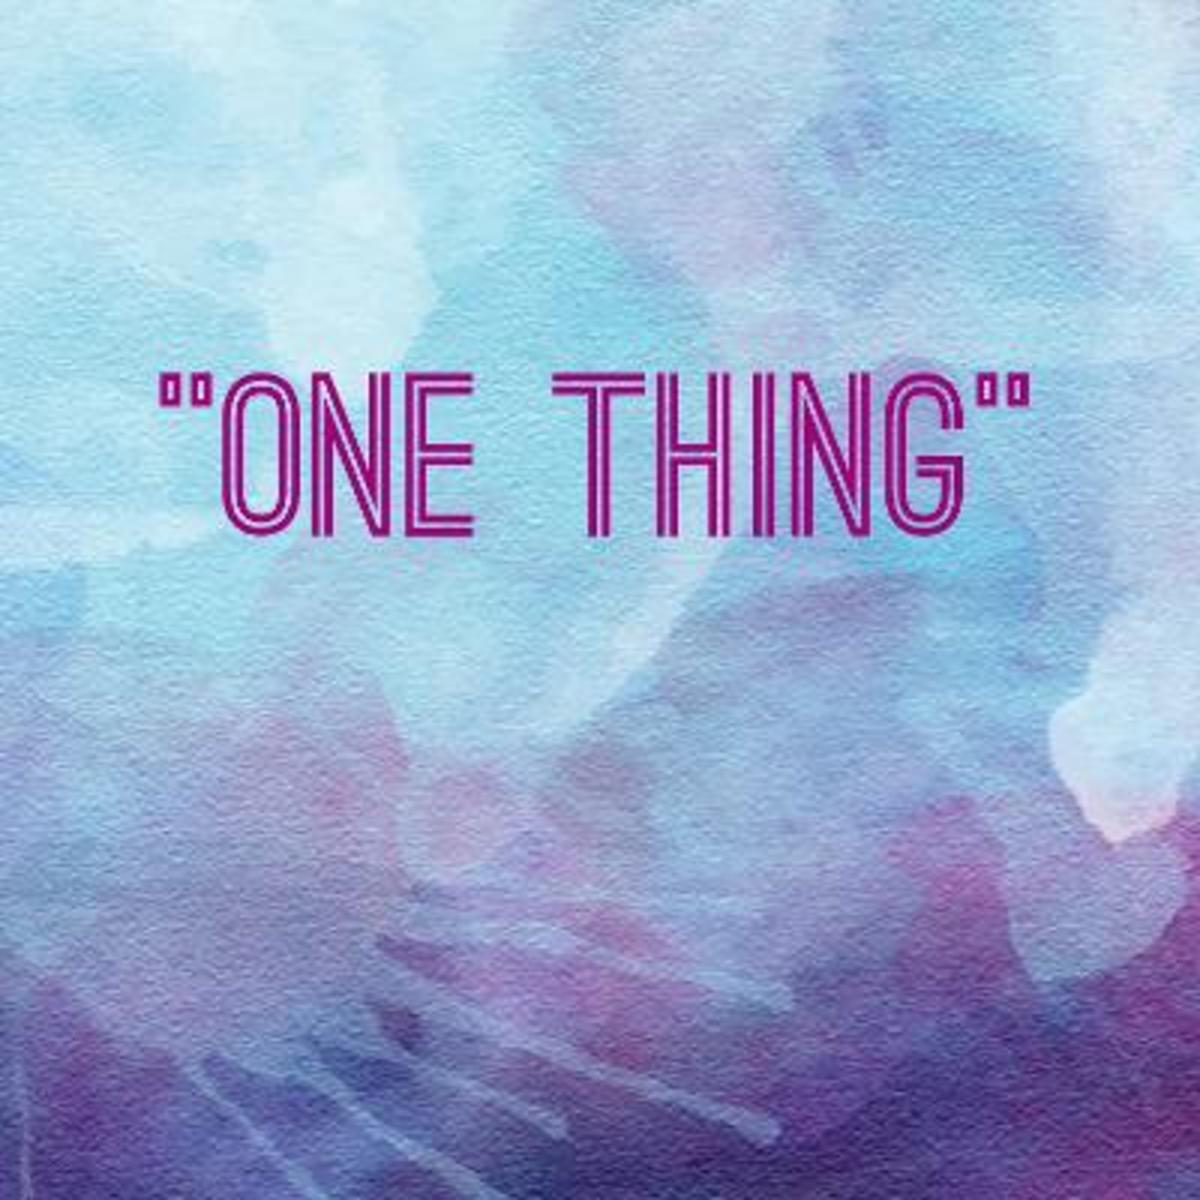 be-a-one-thing-person-based-on-psalm-274